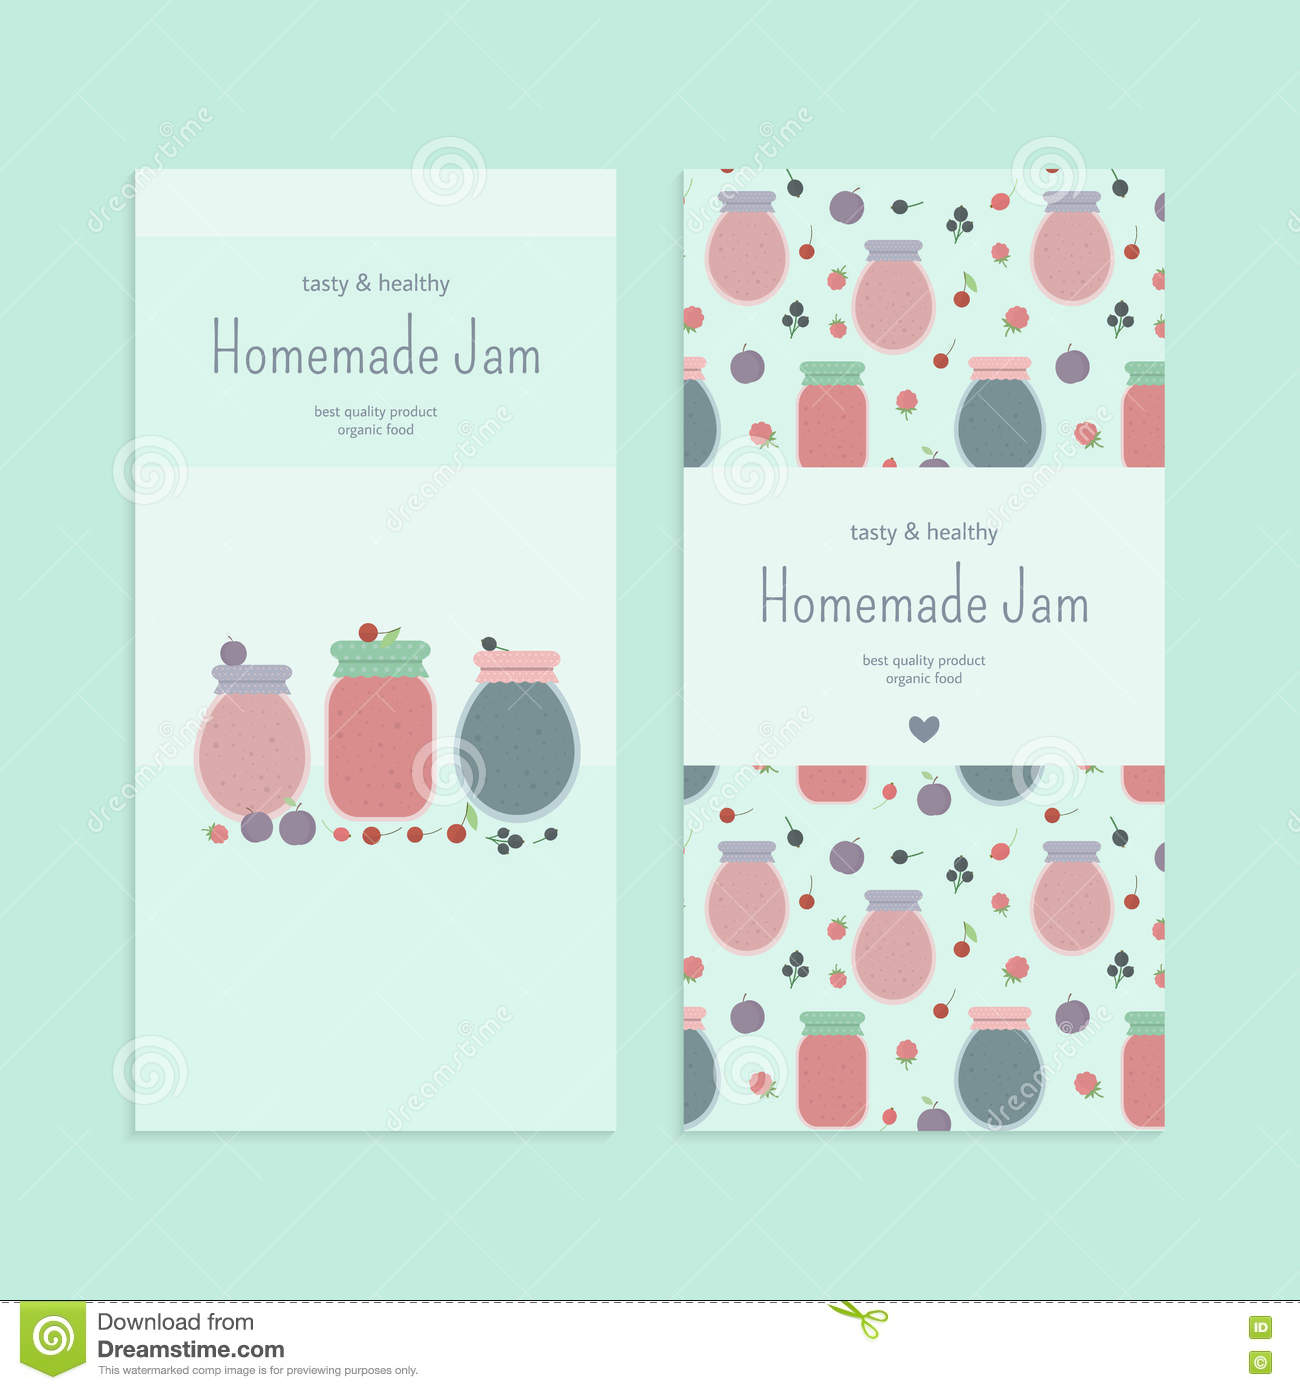 Homemade fruit and berry jam in glass jars banners, flyers template set. illustration